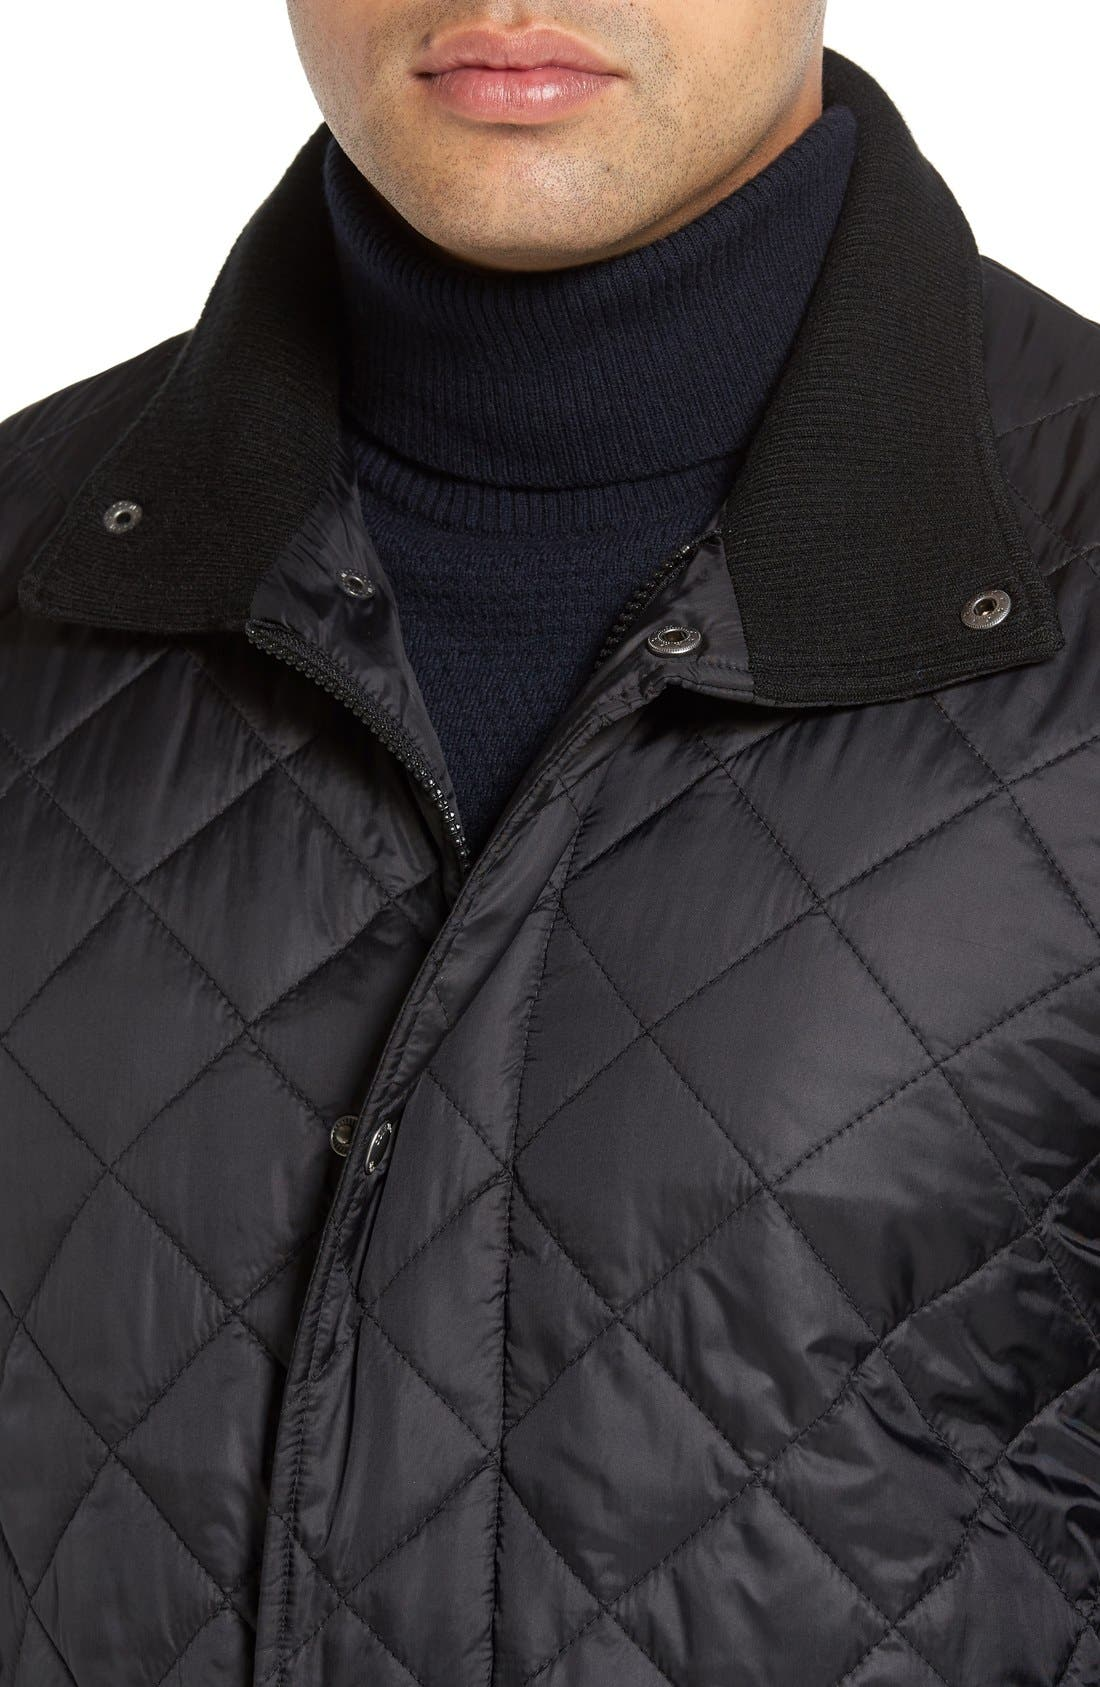 Diamond Quilted Jacket,                             Alternate thumbnail 6, color,                             Black